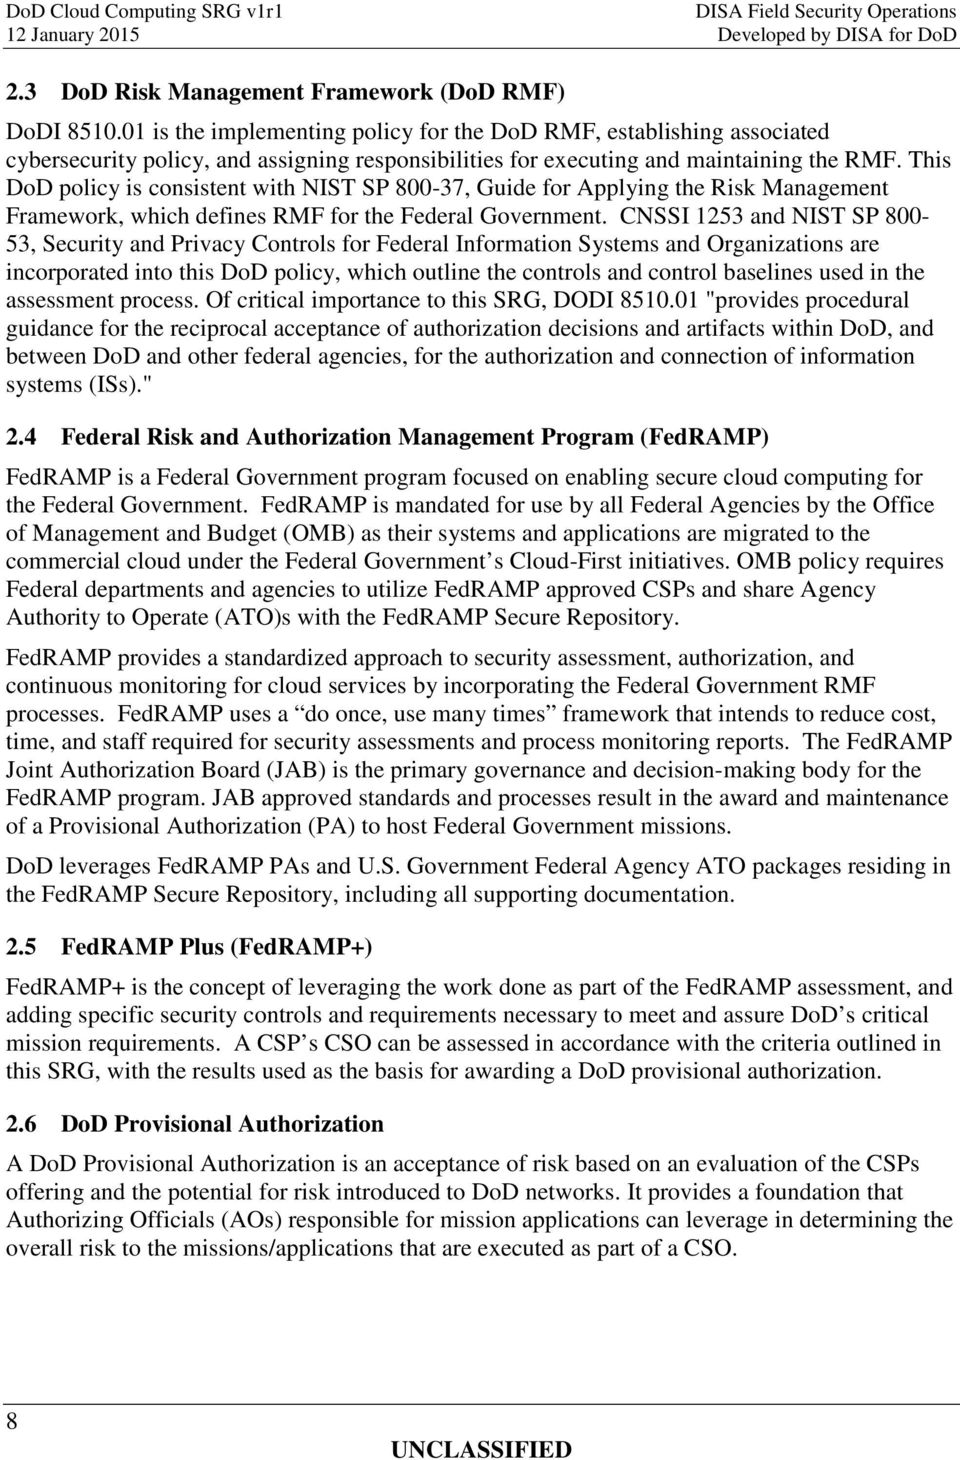 This DoD policy is consistent with NIST SP 800-37, Guide for Applying the Risk Management Framework, which defines RMF for the Federal Government.